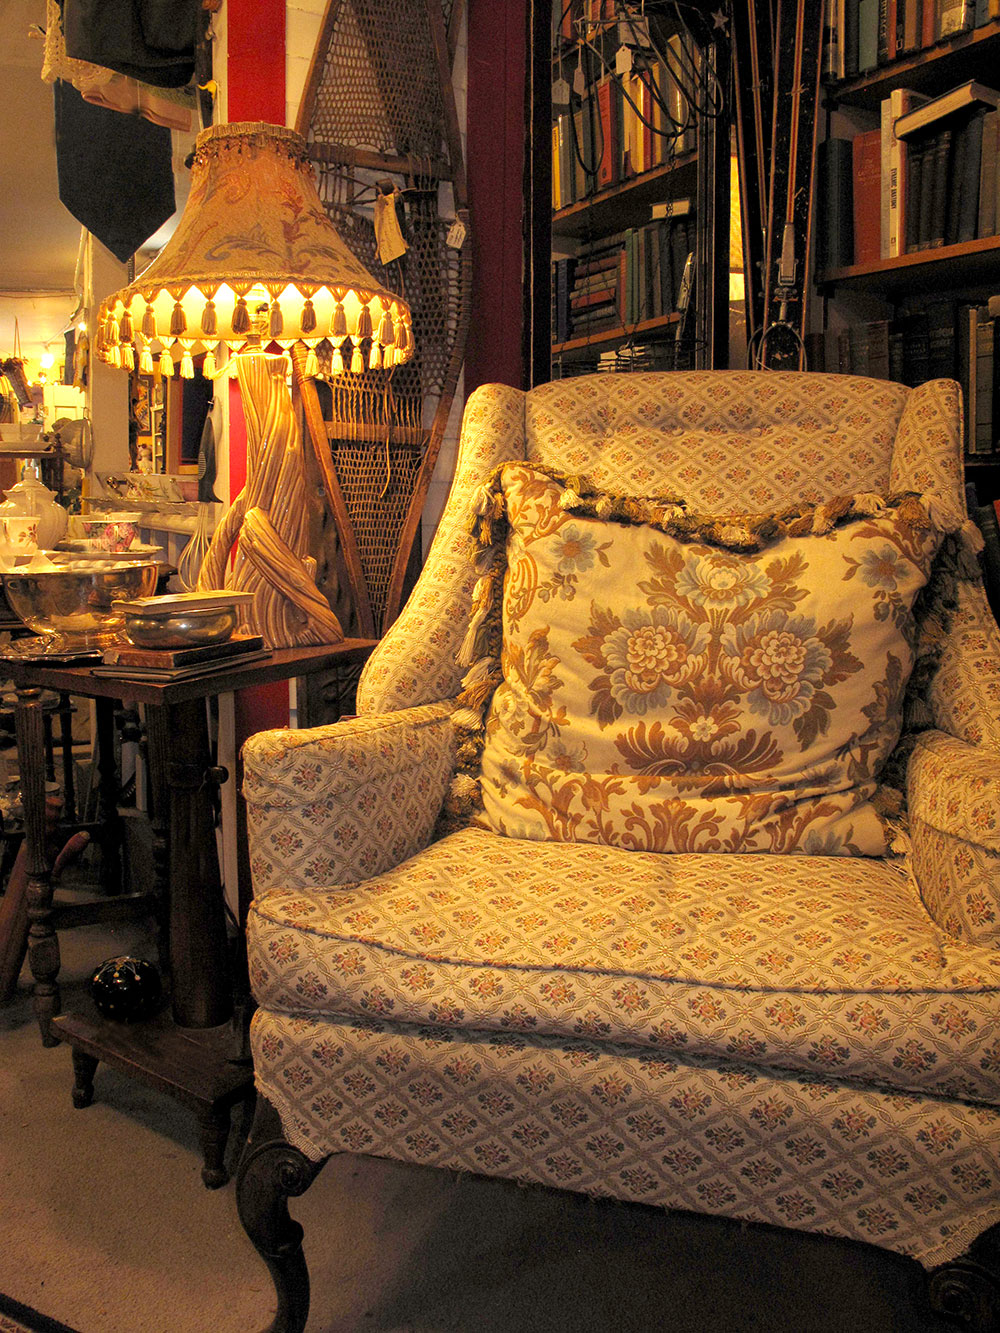 cozy chair and lamp tassled lamp shade